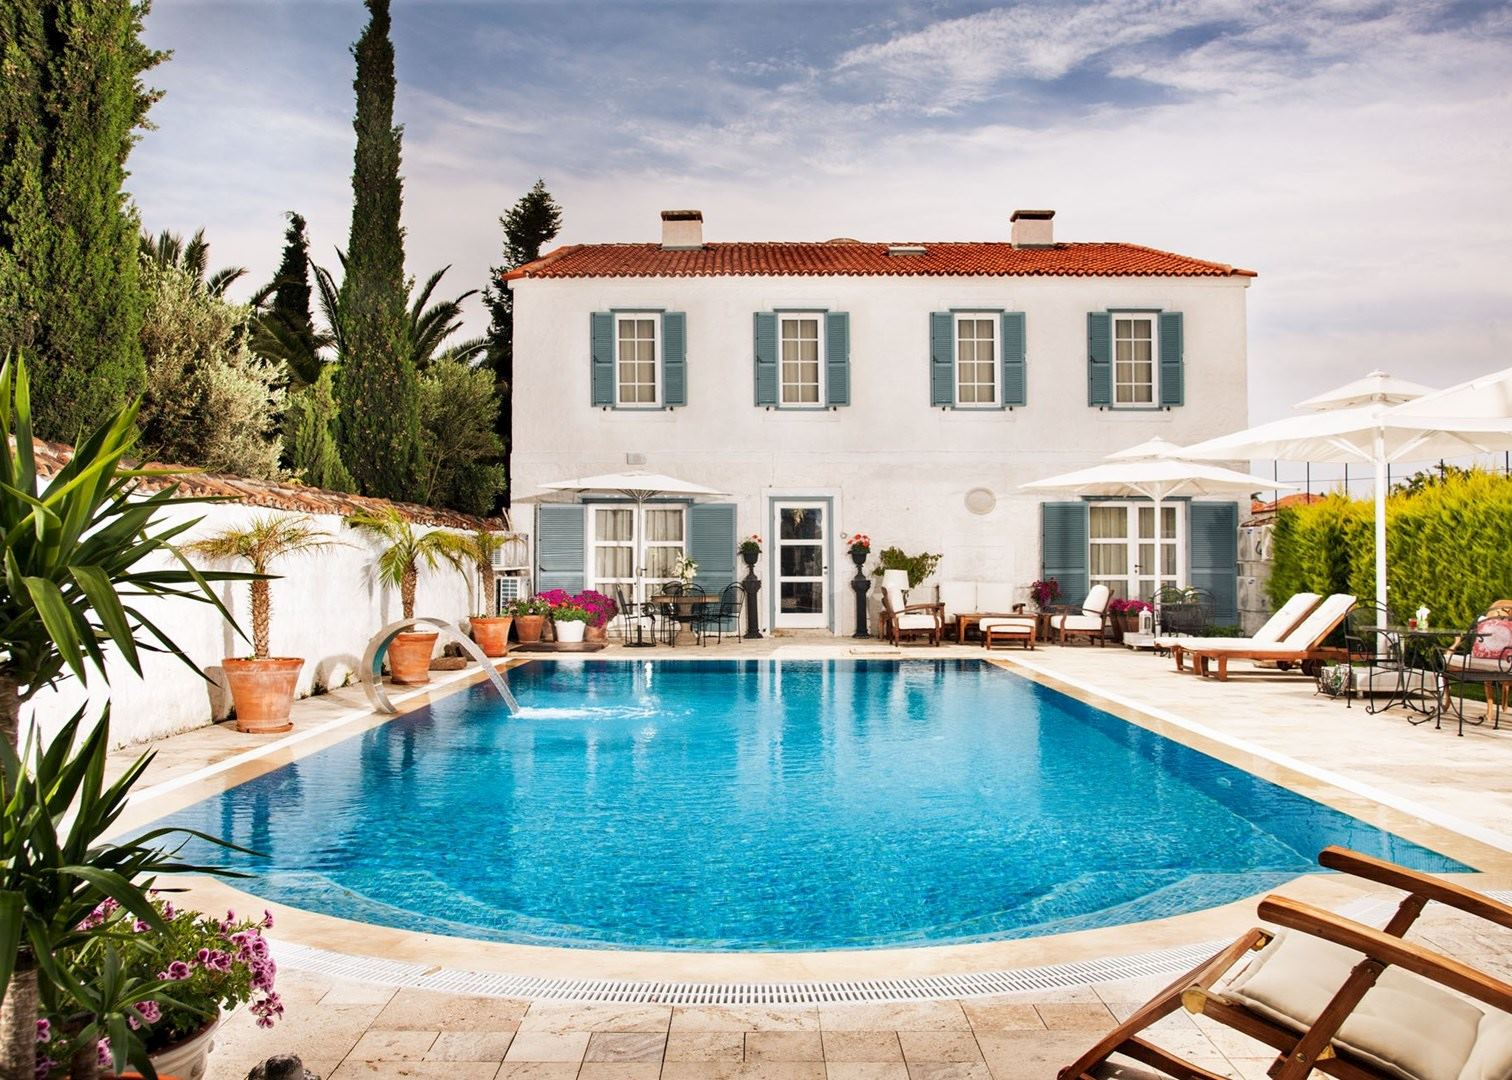 Beyevi otel hotels in alacati audley travel for Design boutique hotel alacati